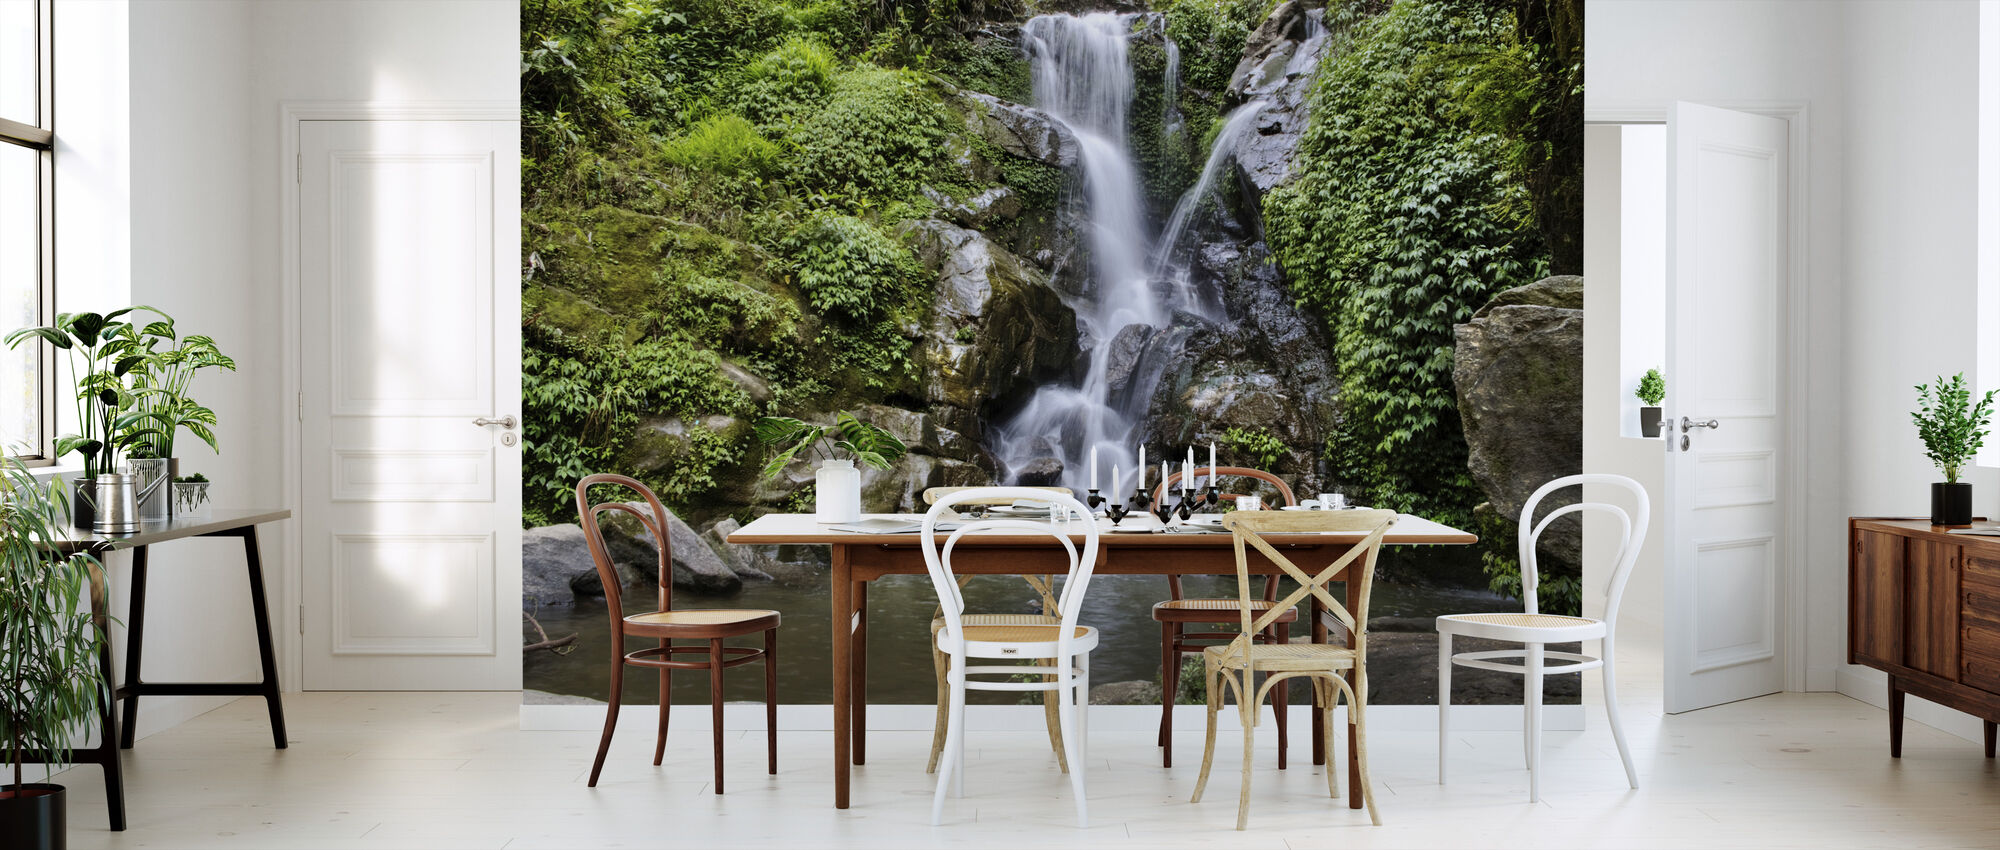 Waterfall and Forest Pool - Wallpaper - Kitchen